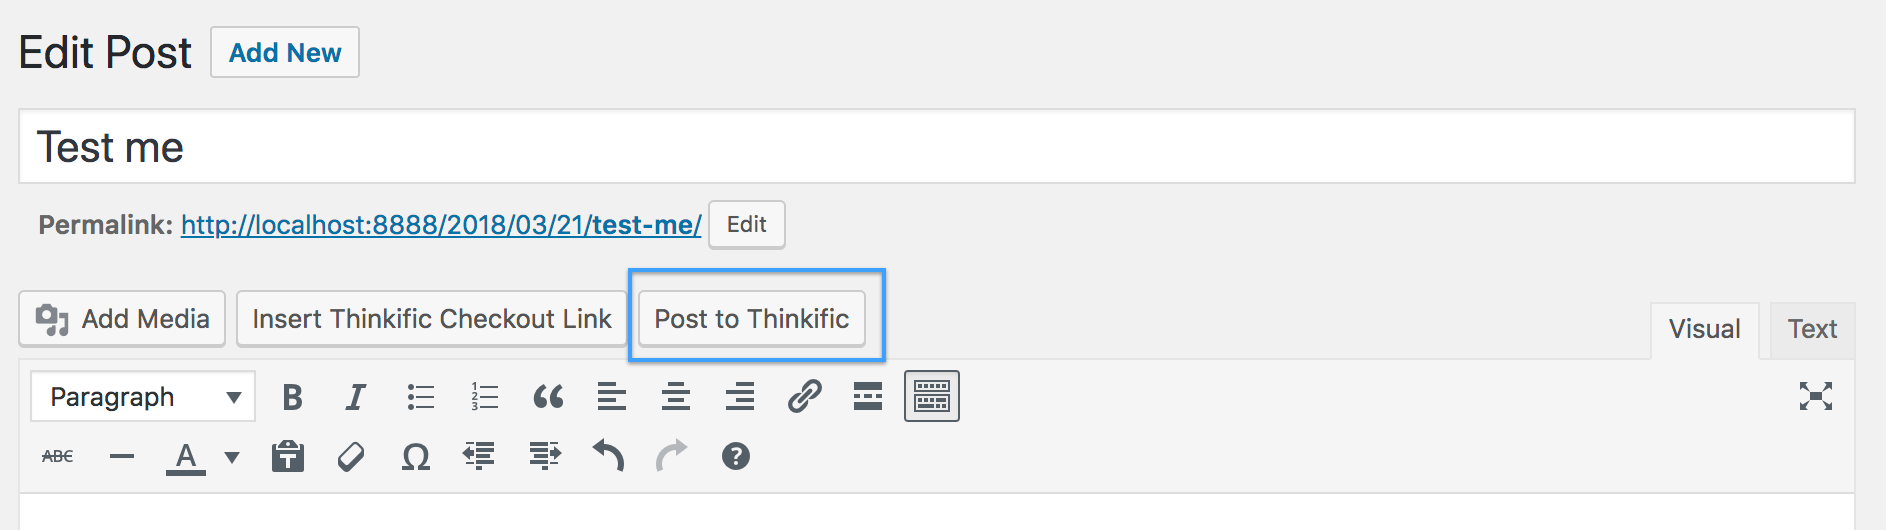 Post to Thinkific Button in WordPress